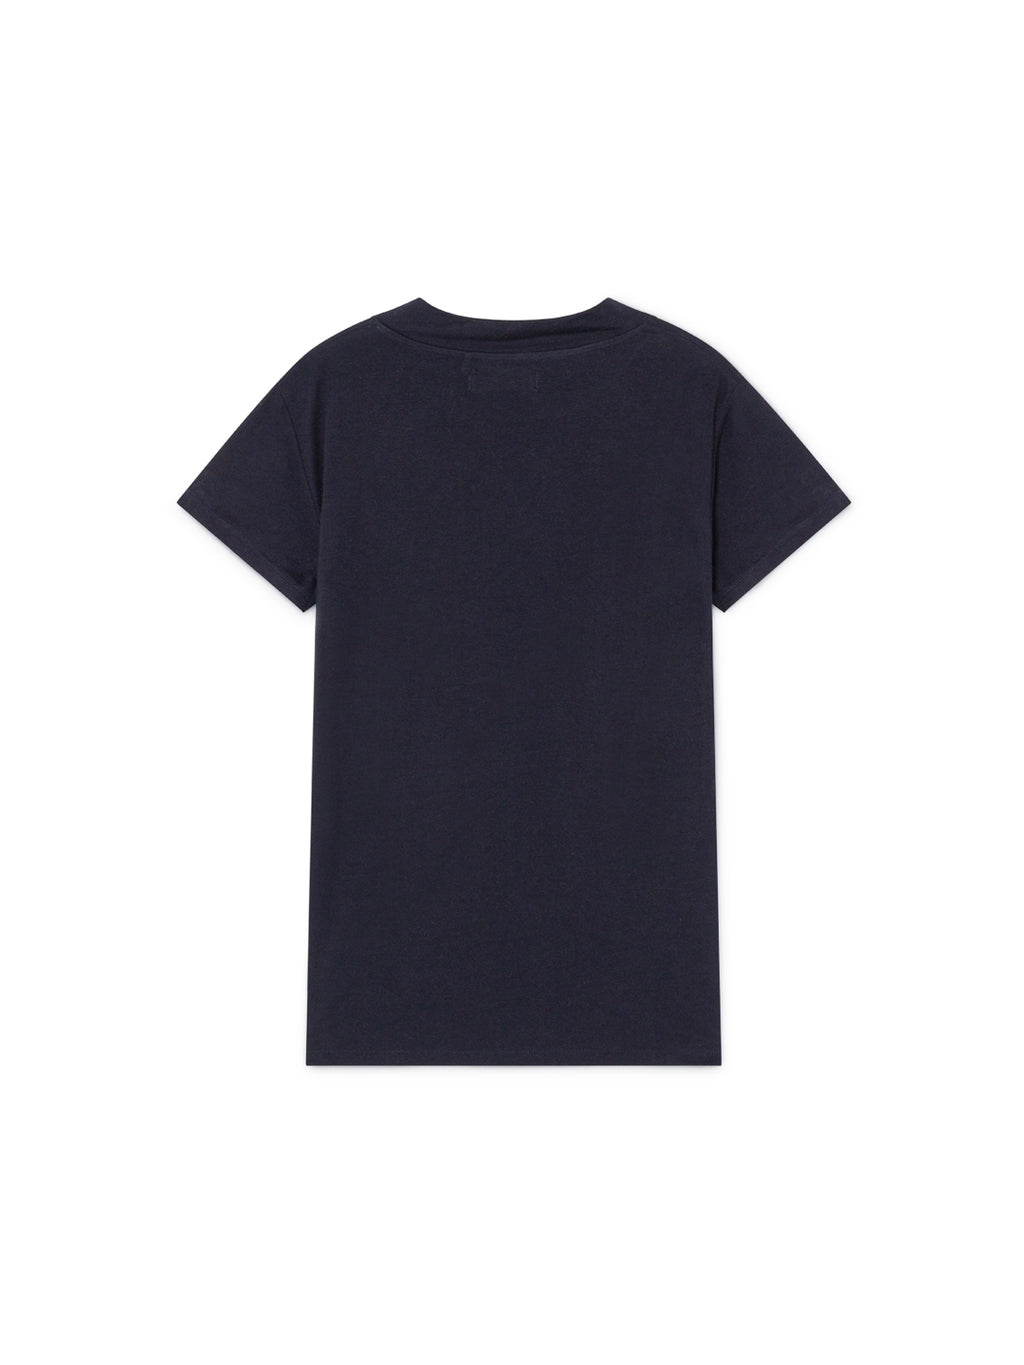 TWOTHIRDS Womens Tee: Irabu - Navy back